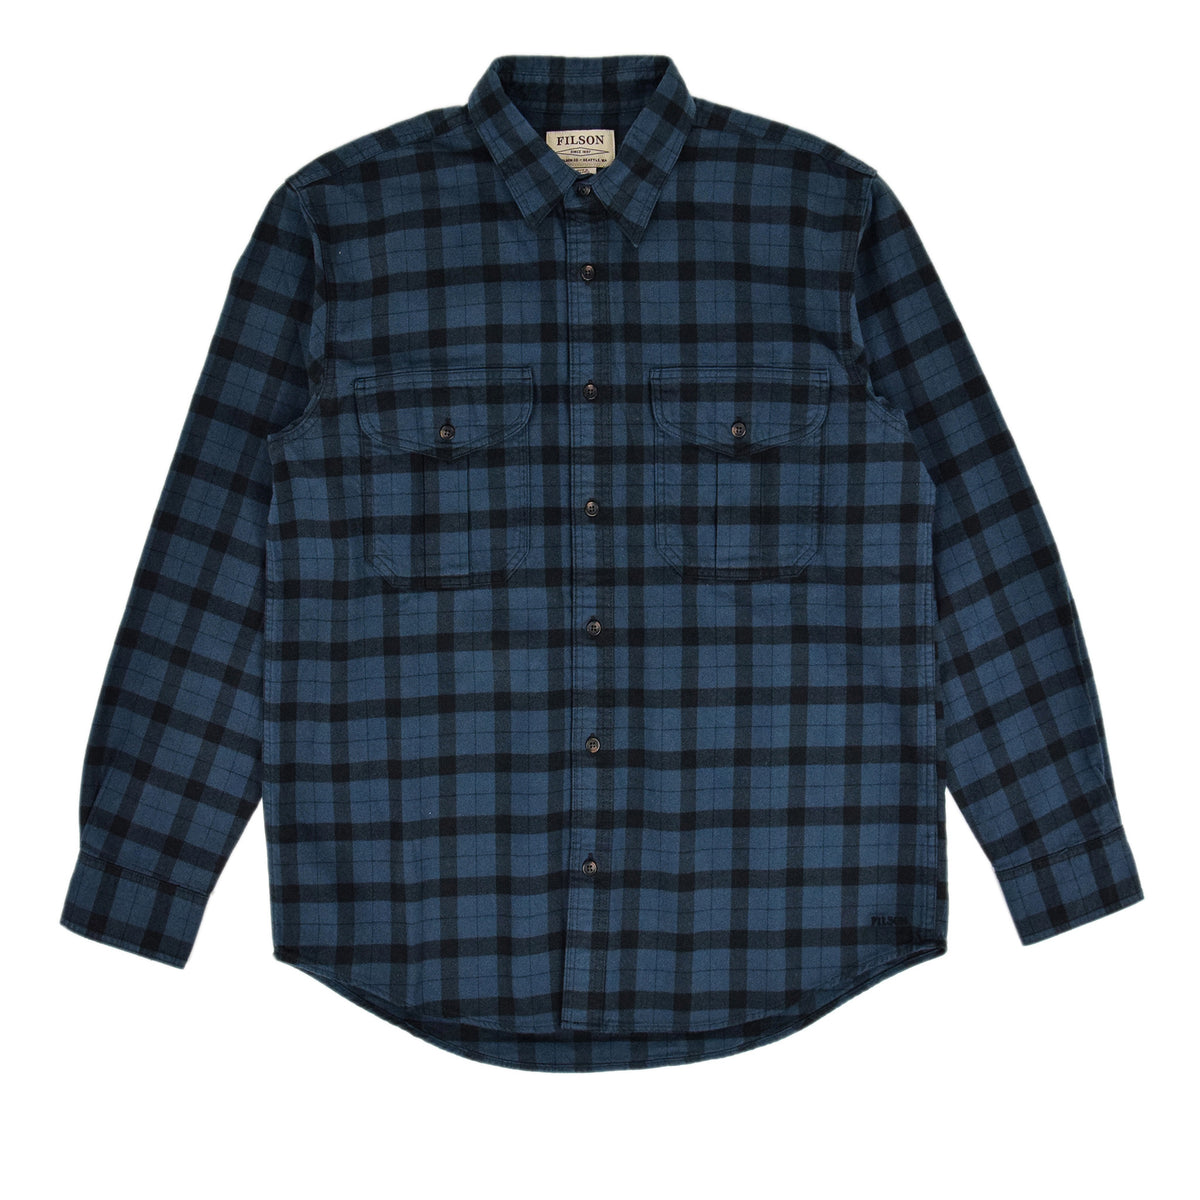 Filson Alaskan Guide Cotton Flannel Shirt Blue/Black Front